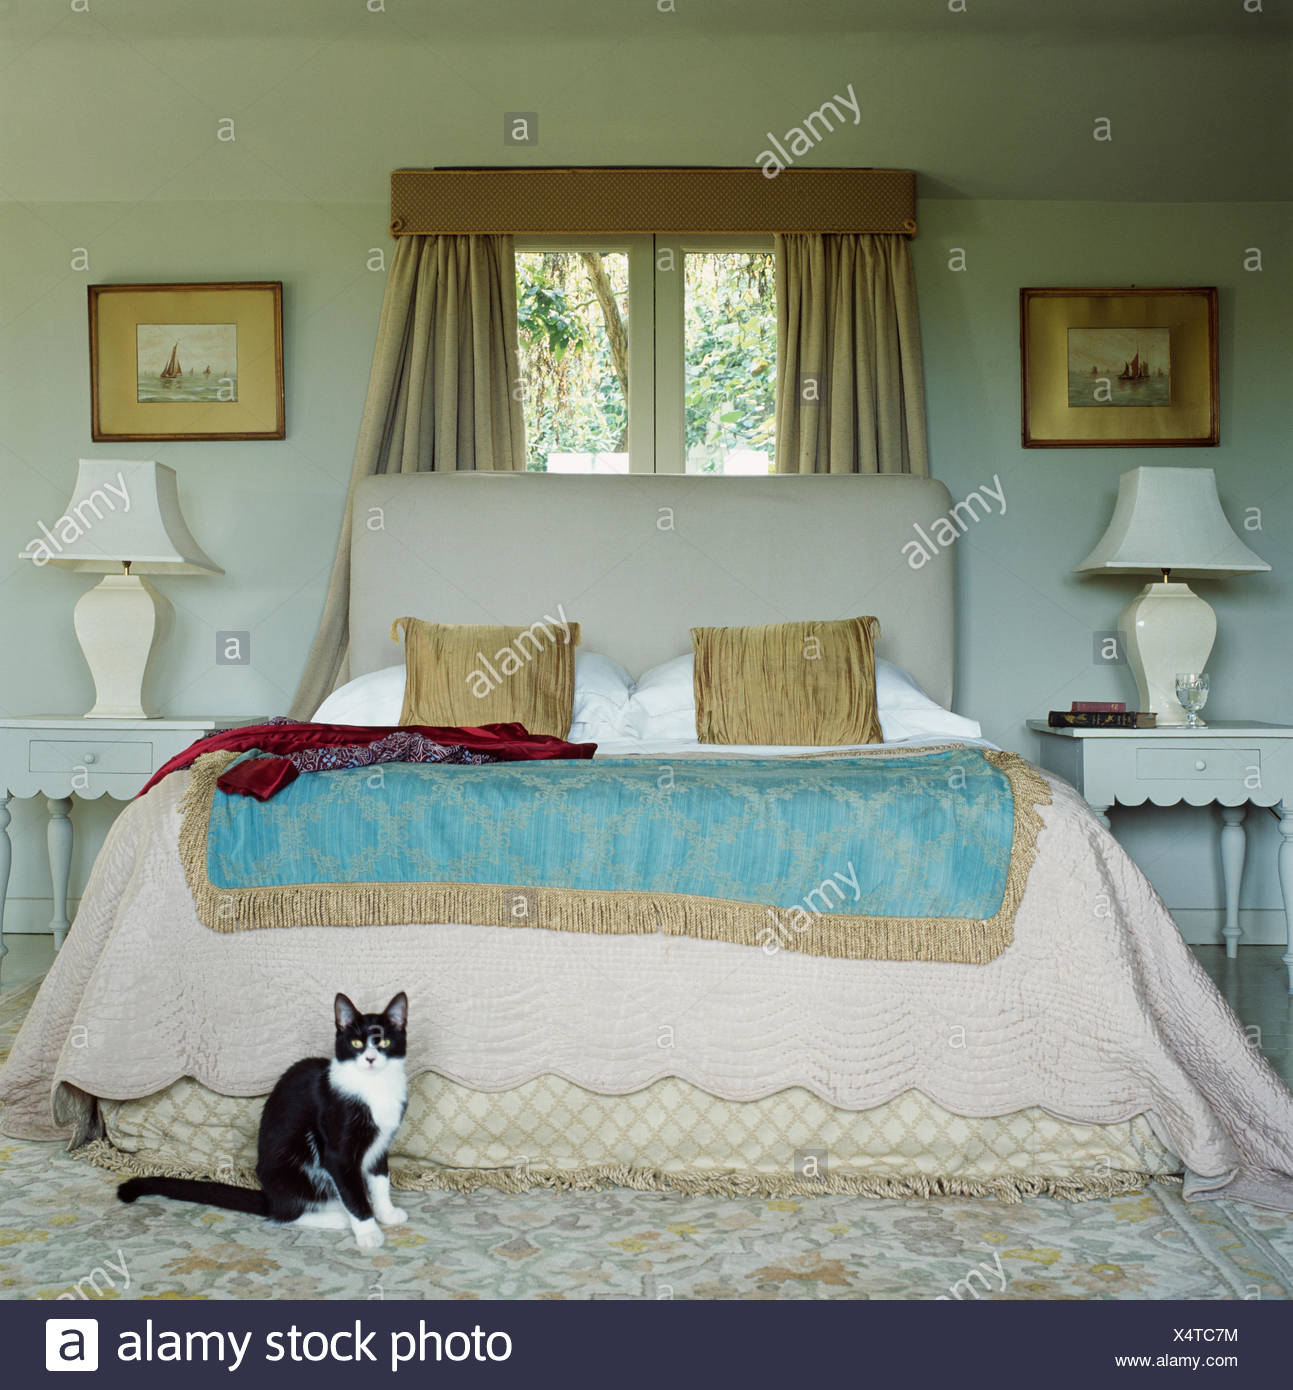 Black White Cat Sitting In Bedroom With Beige Quilt And Blue Throw On Upholstered Bed In Front Of Window Stock Photo Alamy